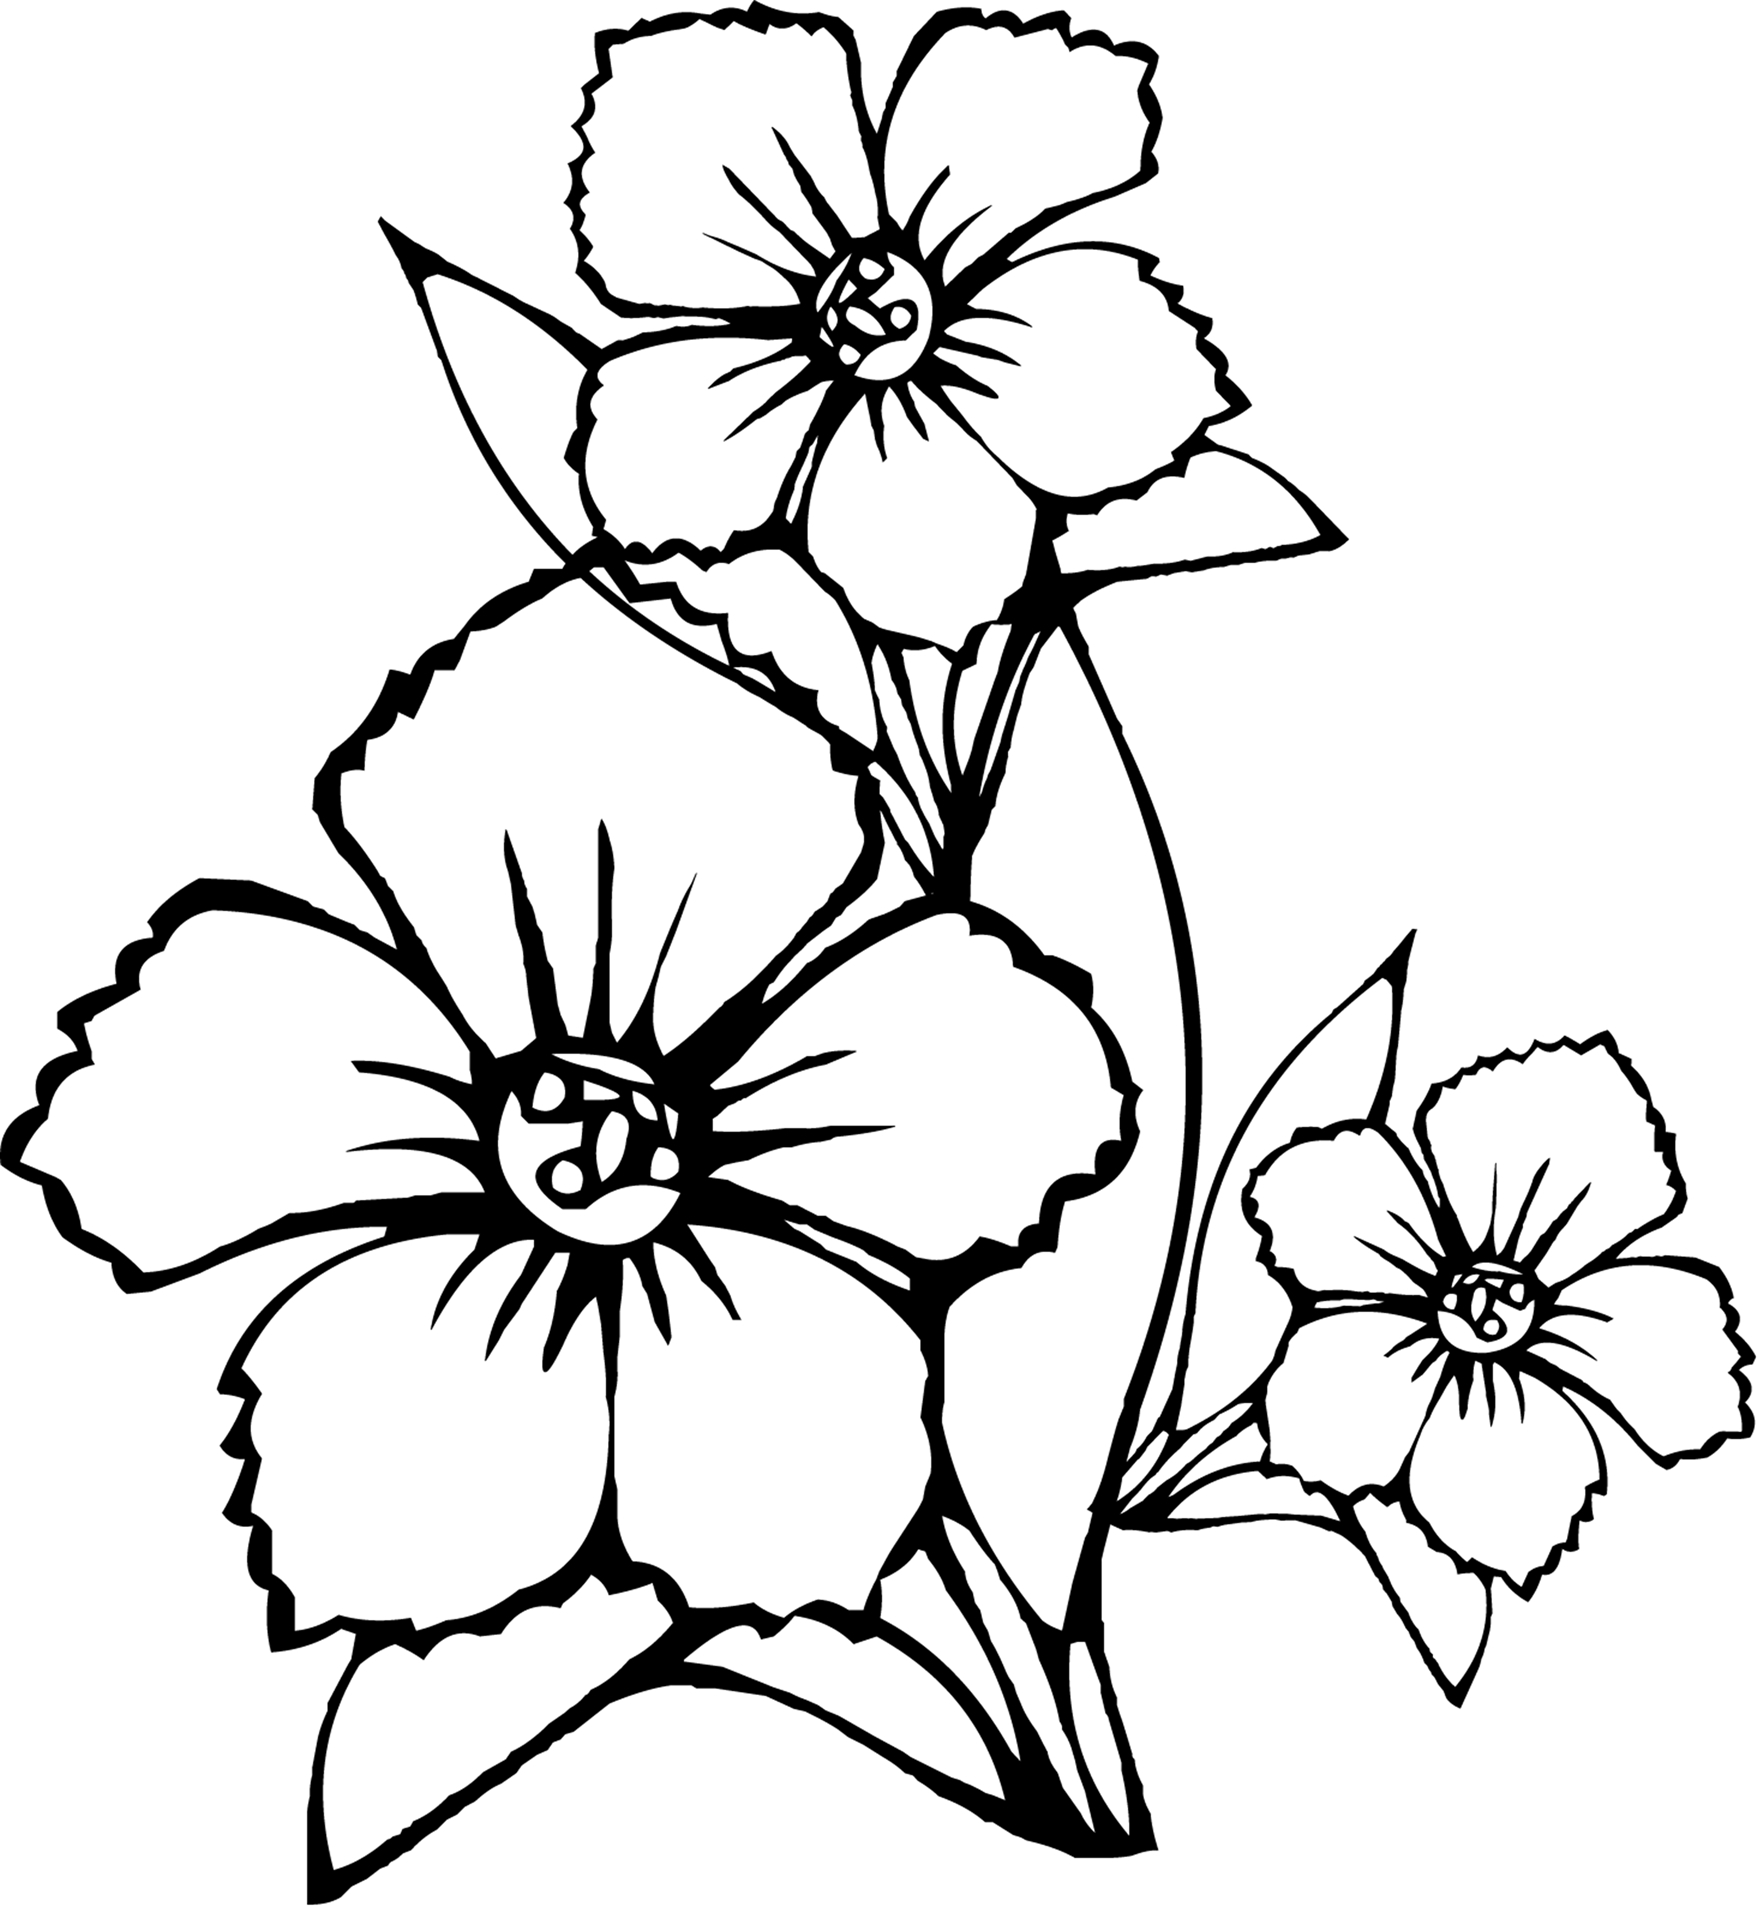 coloring flower free printable flower coloring pages for kids best flower coloring